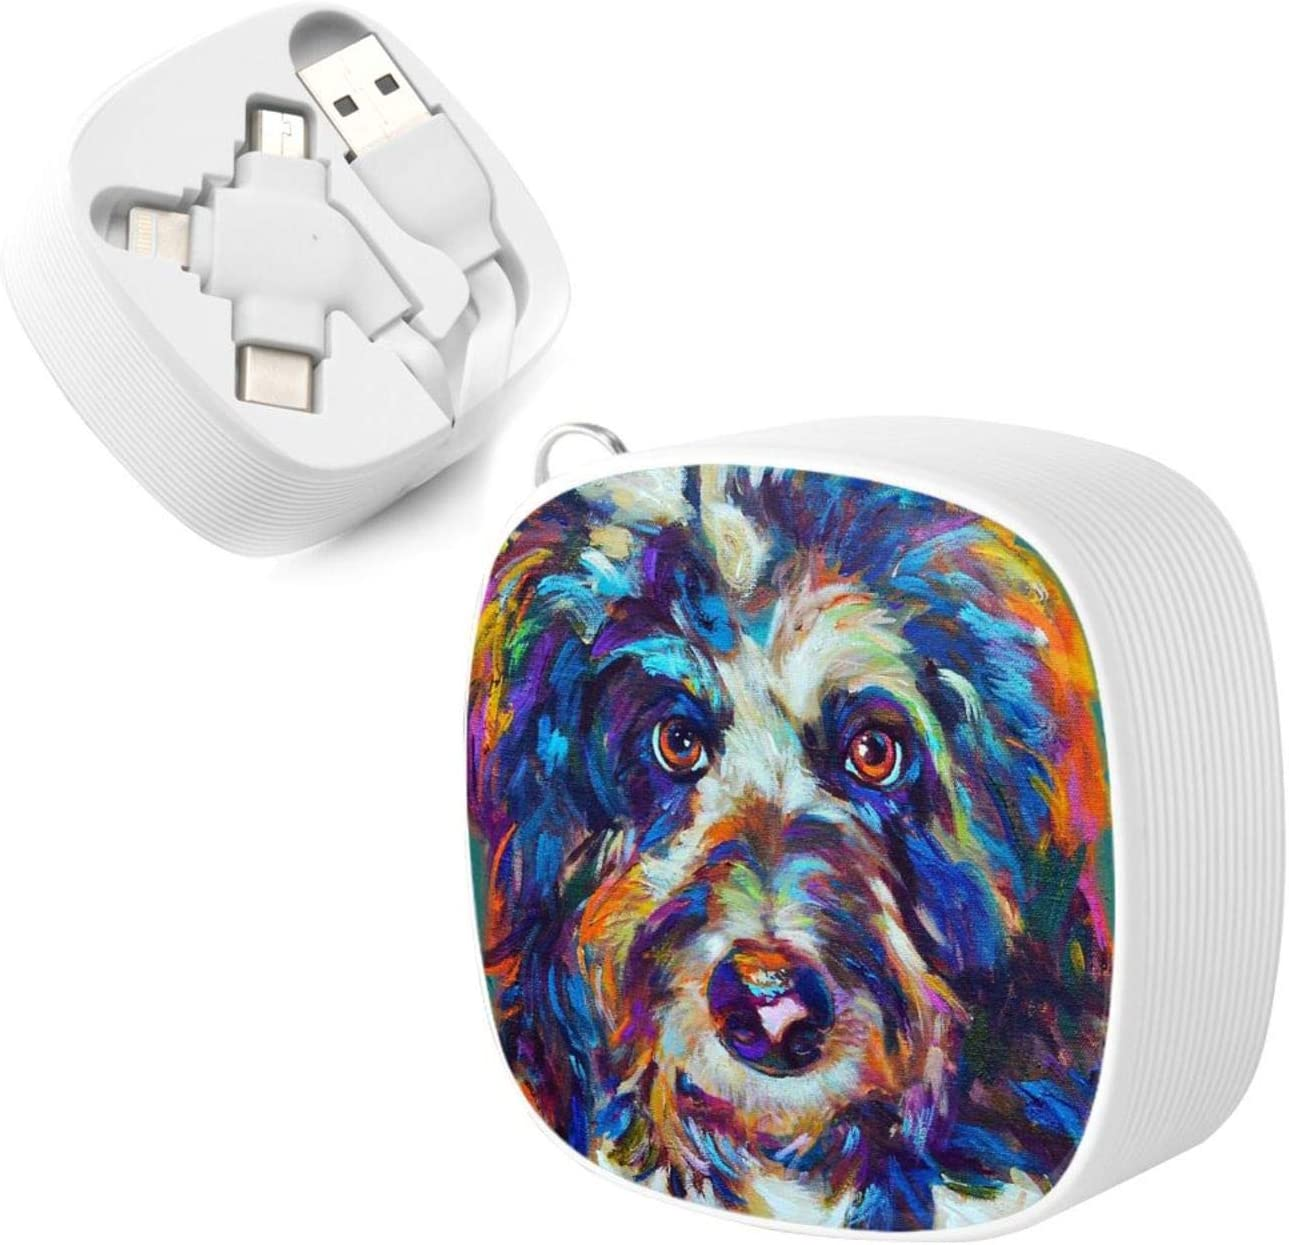 Multi Charging Cable Portable 3 in 1 Max The Aussiedoodle Throw Pillow USB Power Cords for Cell Phone Tablets and More Devices Charging